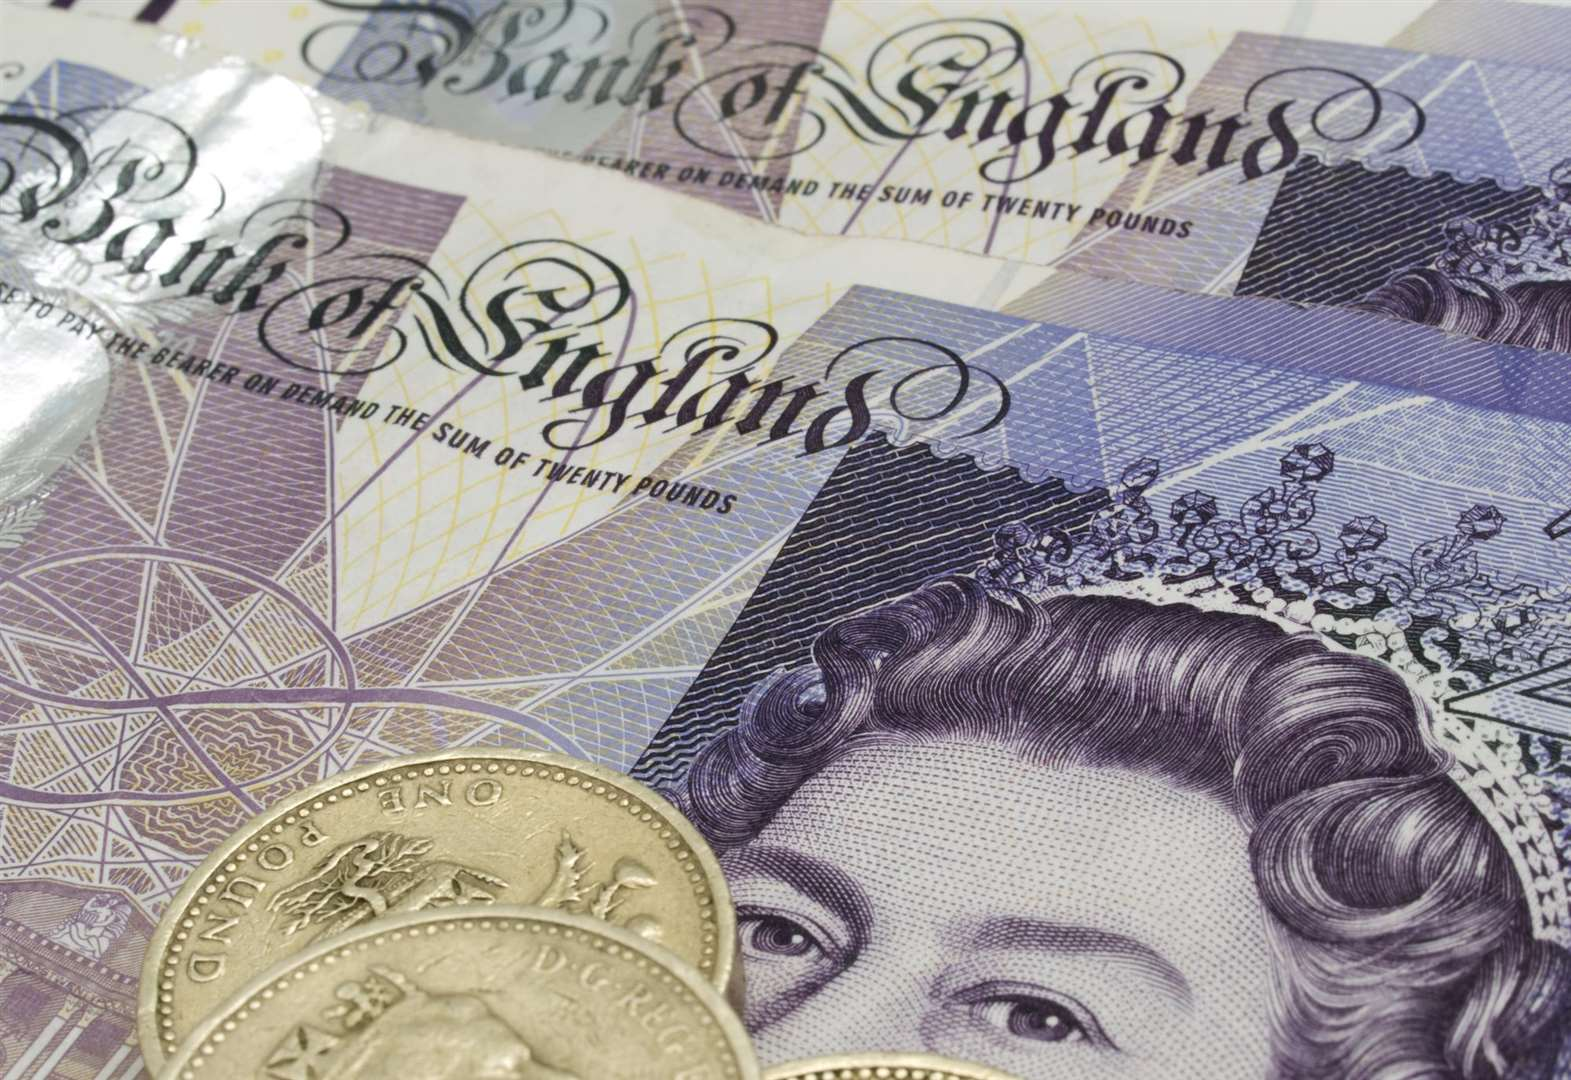 Man charged with laundering more than £100k